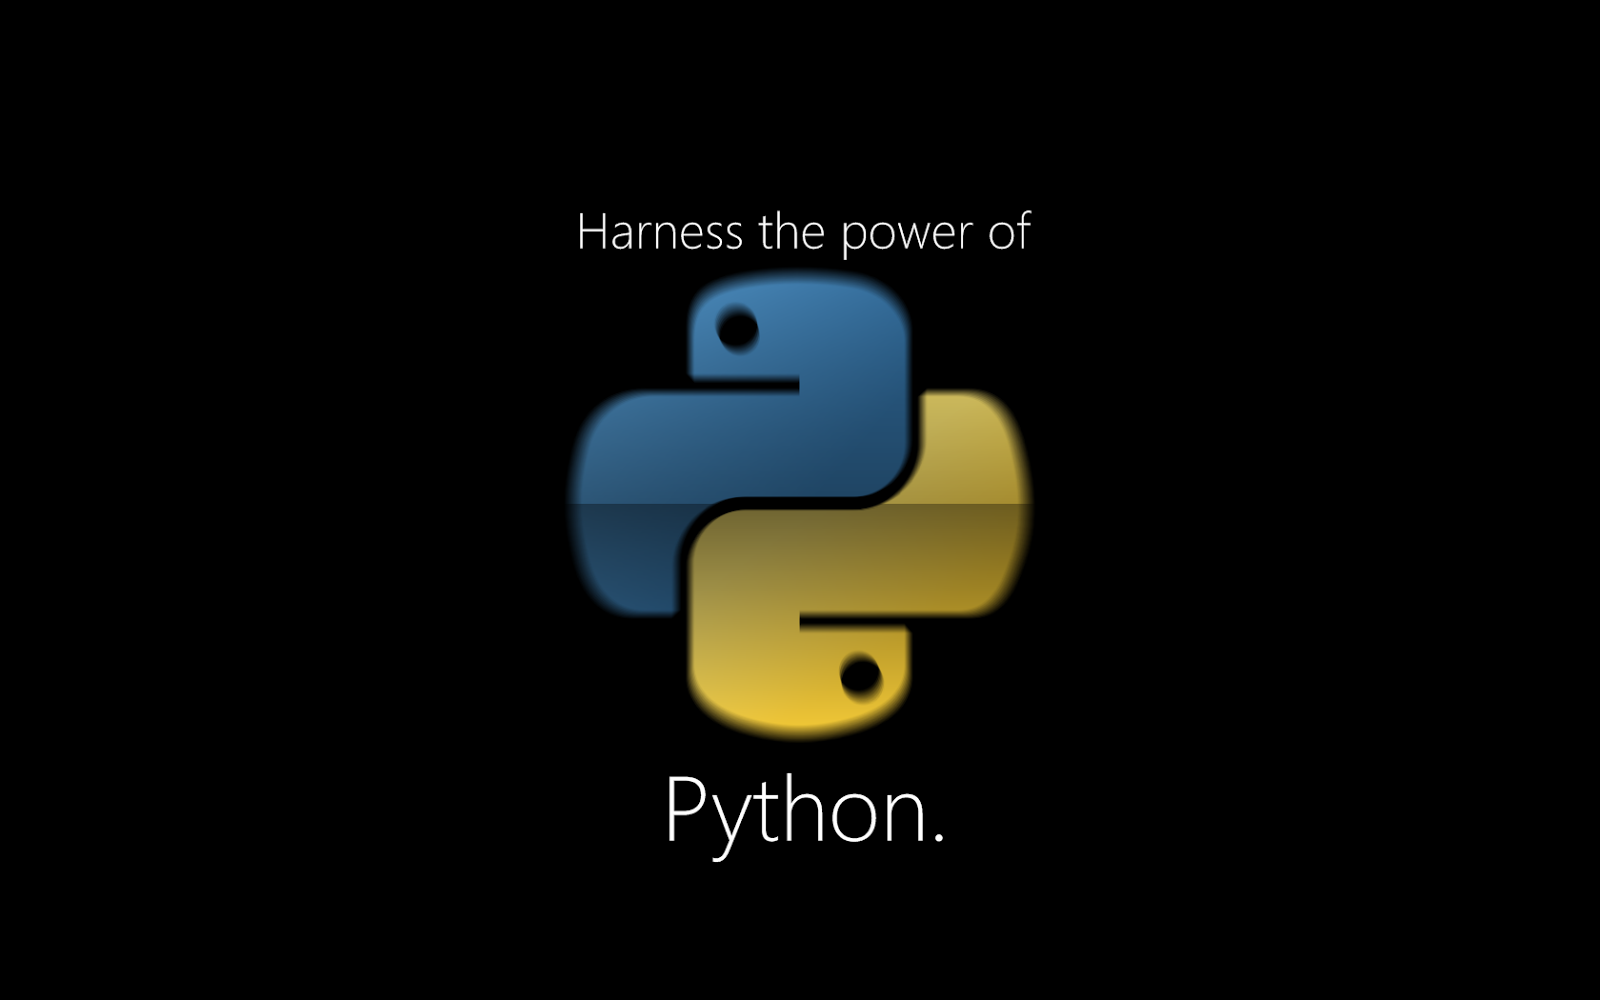 programming images python hd - photo #4